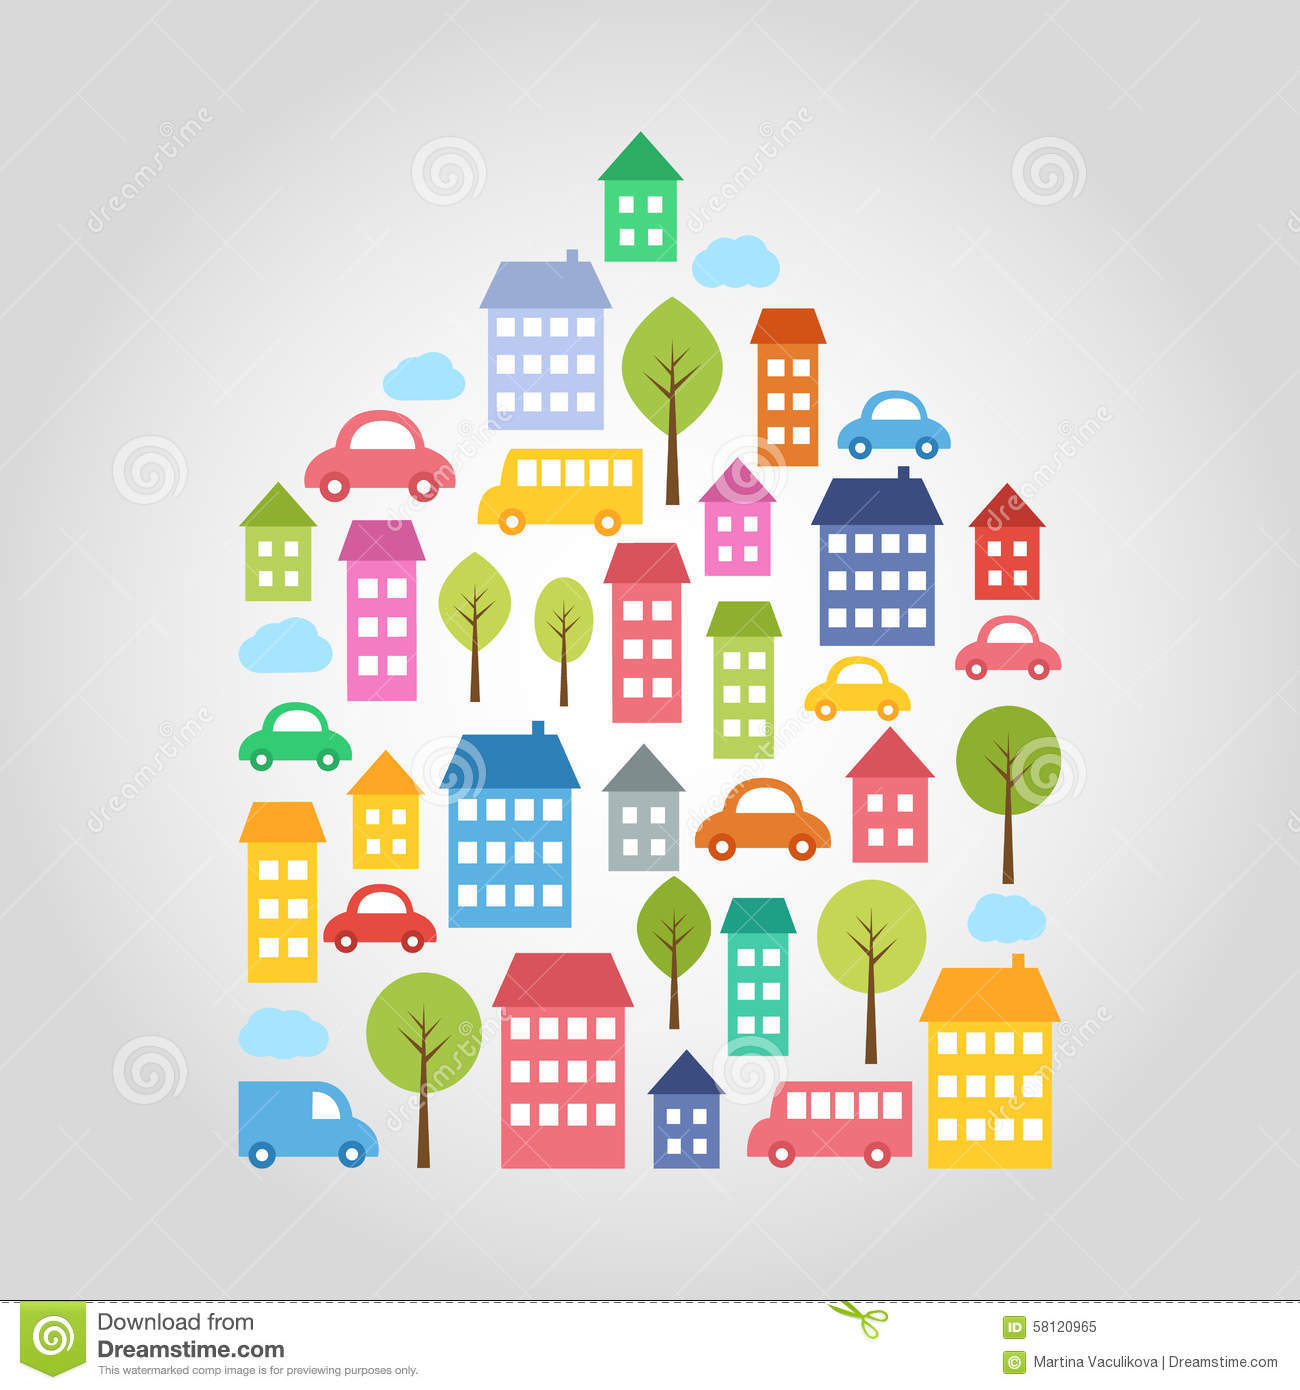 Town design elements stock vector image 58120965 - Home design elements ...